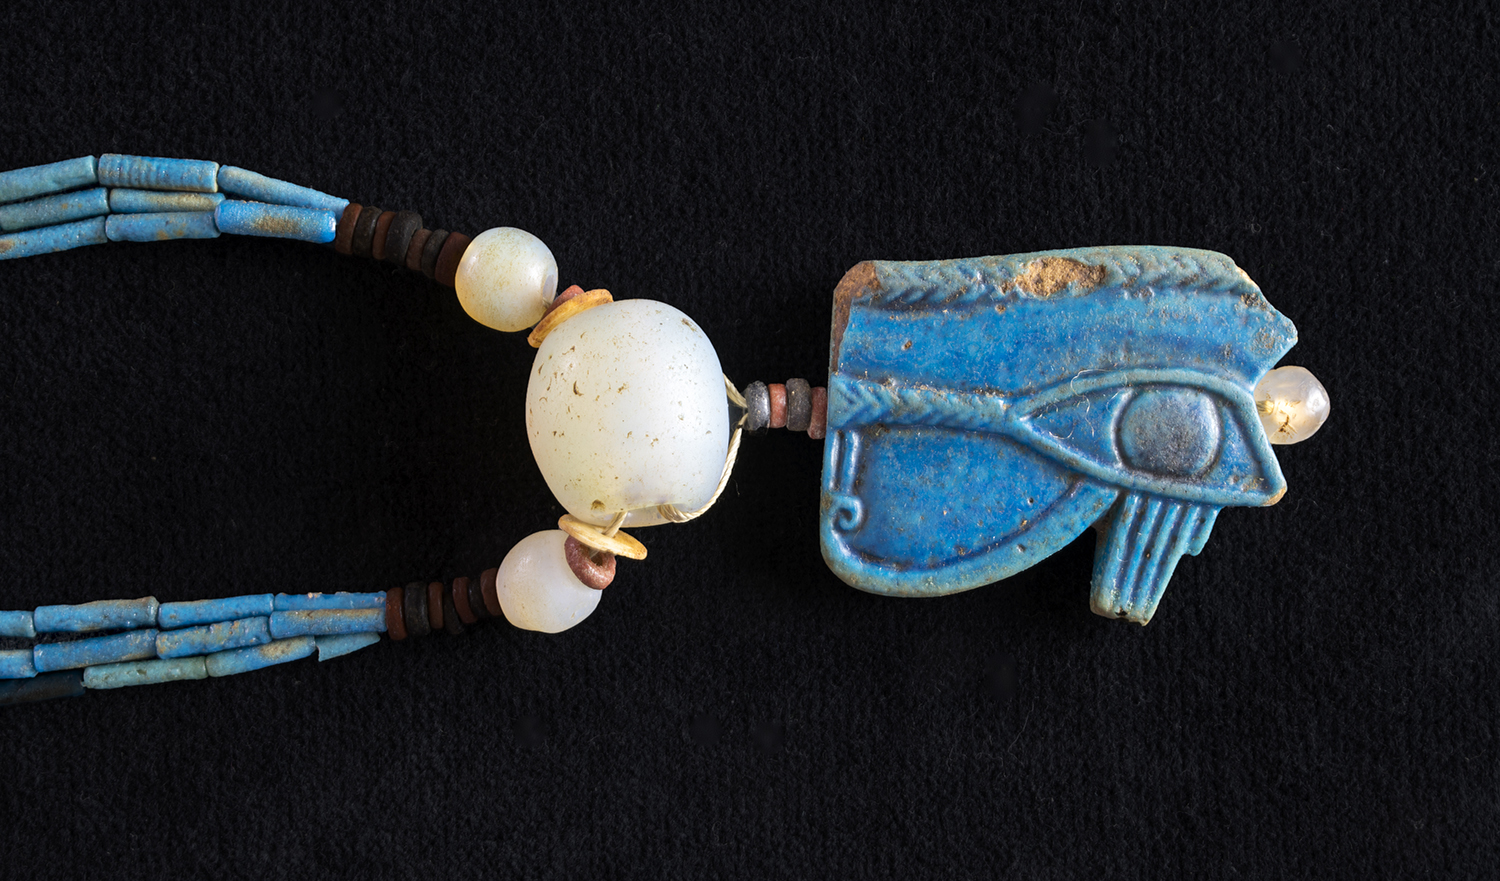 """Figure 33:   Wedjat  Eye . Perhaps the most popular of all Egyptian amulets, the  wedjat  eye, or the """"eye of Horus"""" amulet, represents the eye of that god, which had been damaged in a battle with his uncle, the god Seth (see also Figure 34). The injured eye was restored by means of magical powers and became whole and healthy again. The word  wedjat  means """"healthy"""" or """"sound,"""" and this amulet was worn as a wish for protection and health .  Glencairn Museum 15.JW.534."""